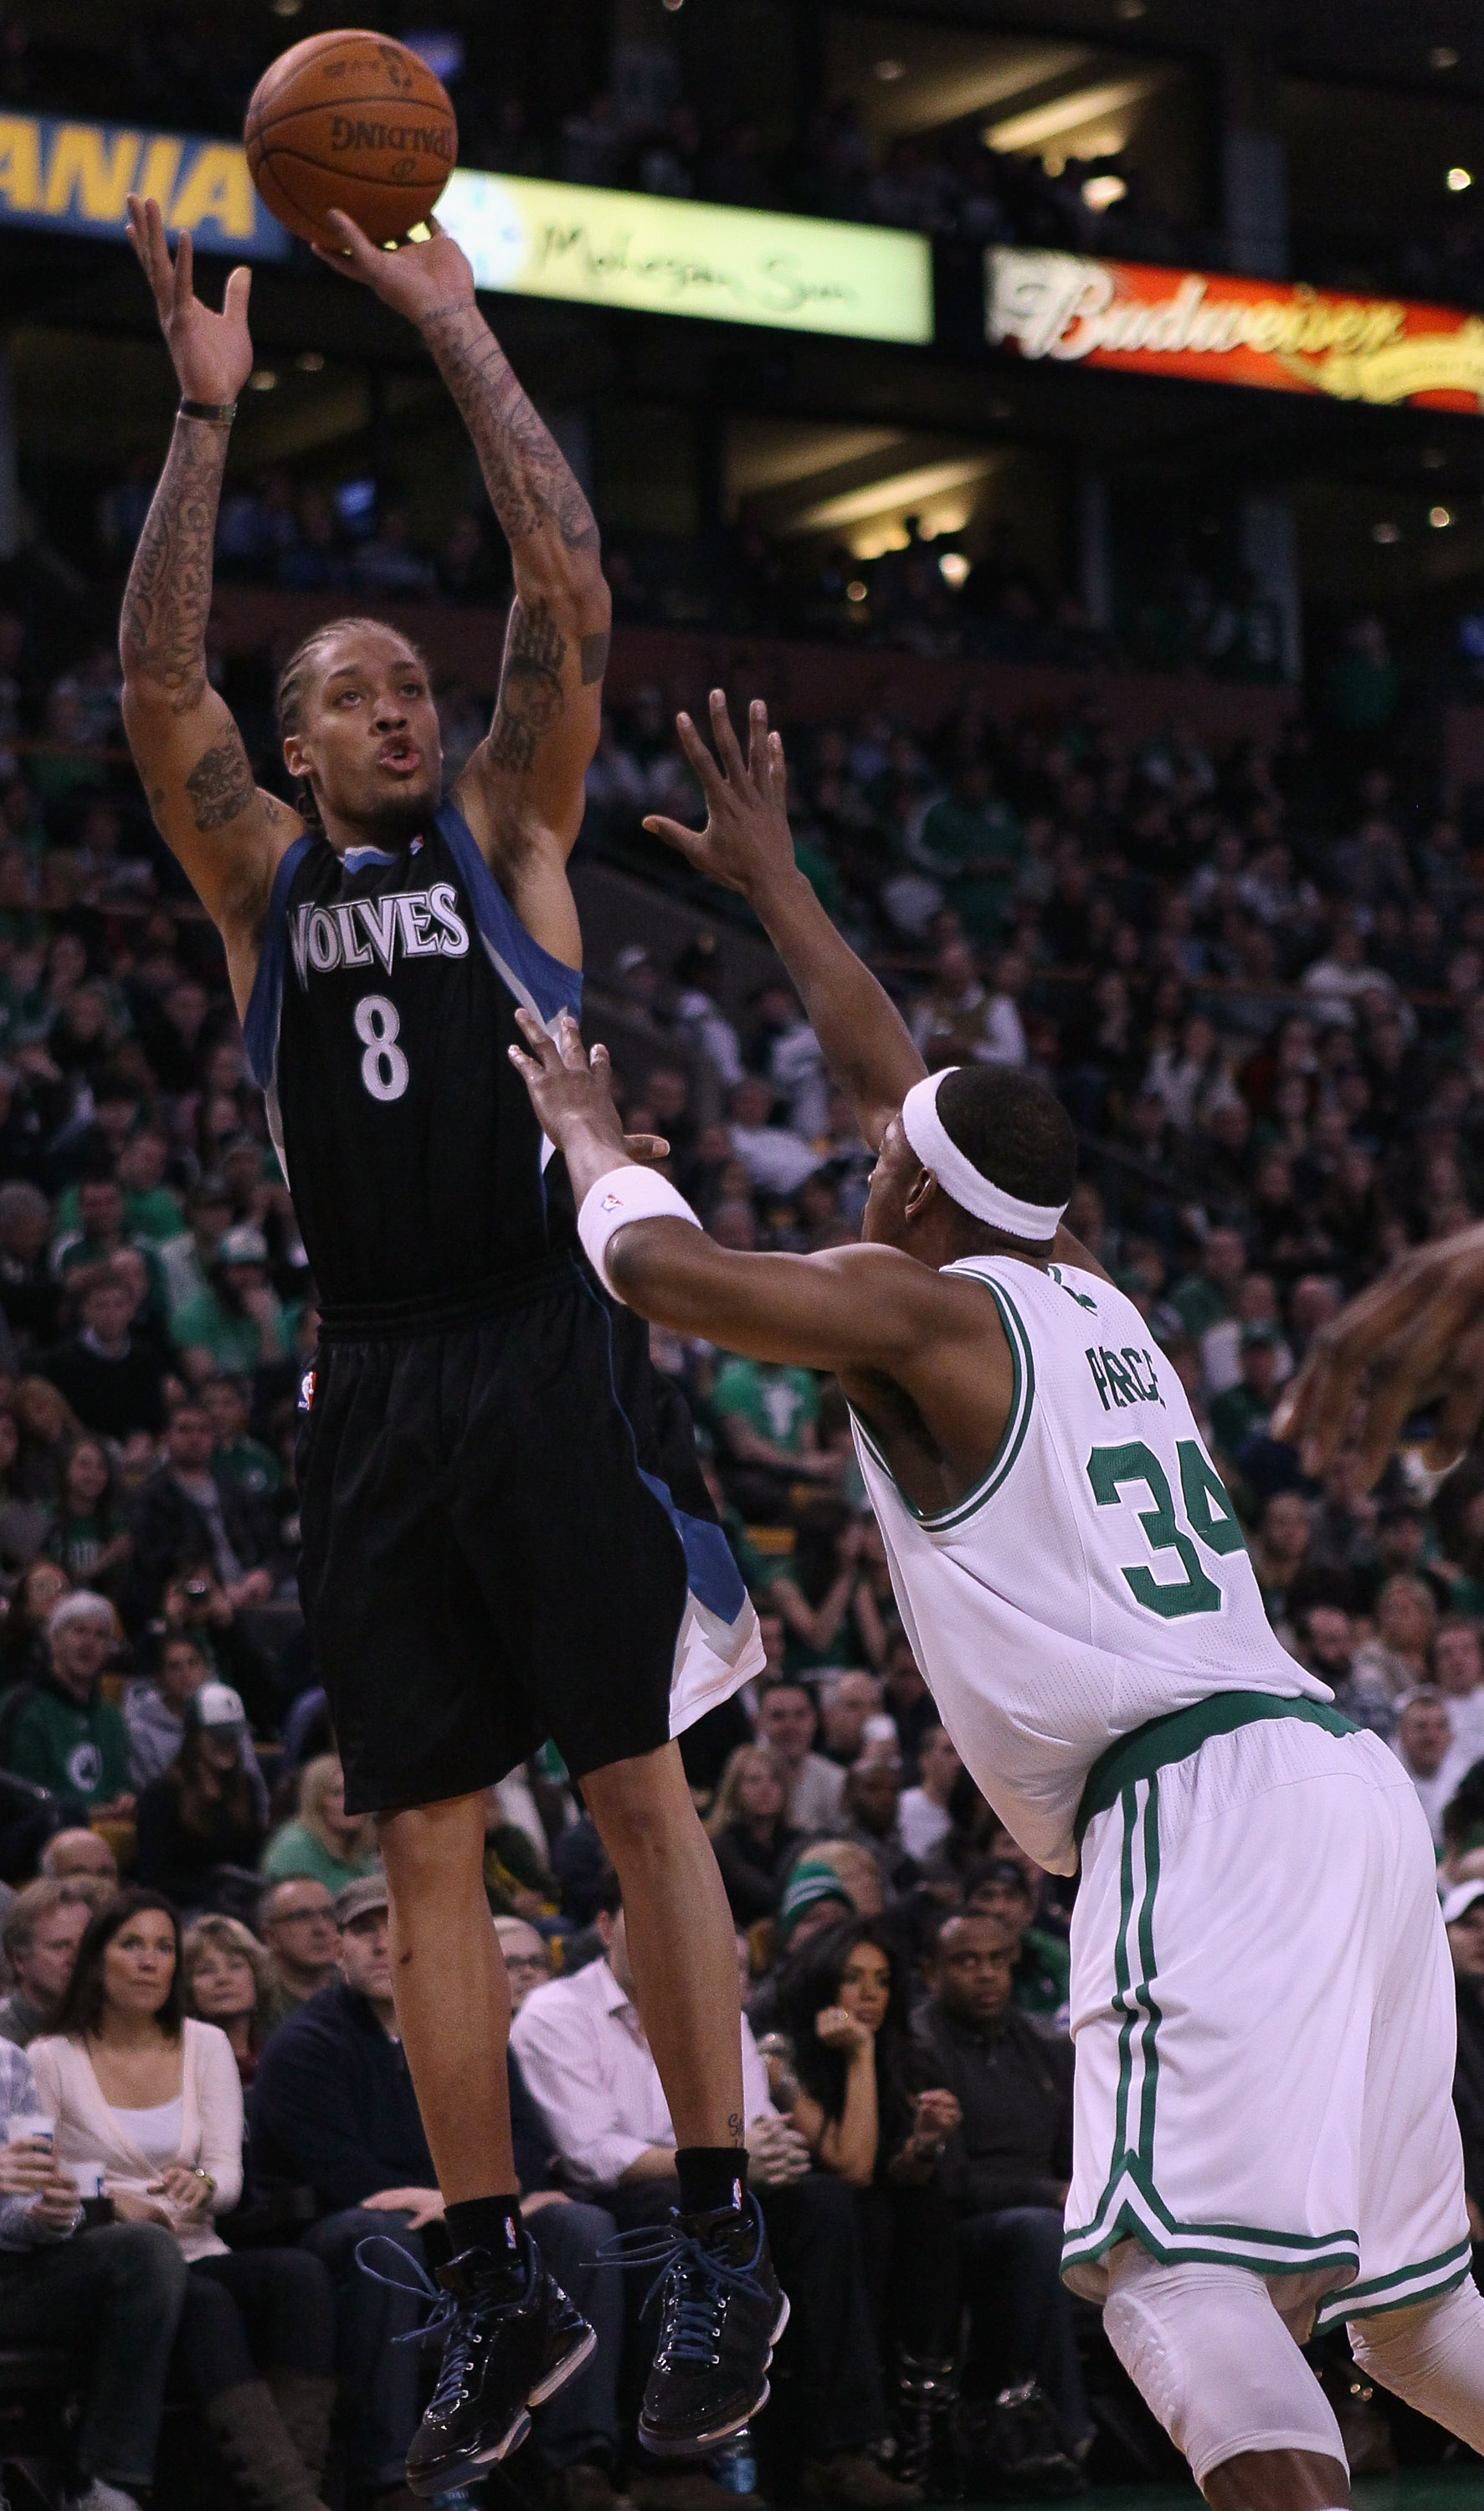 BOSTON, MA - JANUARY 03:  Michael Beasley #8 of the Minnesota Timberwolves takes a shot as Paul Pierce #34 of the Boston Celtics defends on January 3, 2011 at the TD Garden in Boston, Massachusetts. NOTE TO USER: User expressly acknowledges and agrees tha